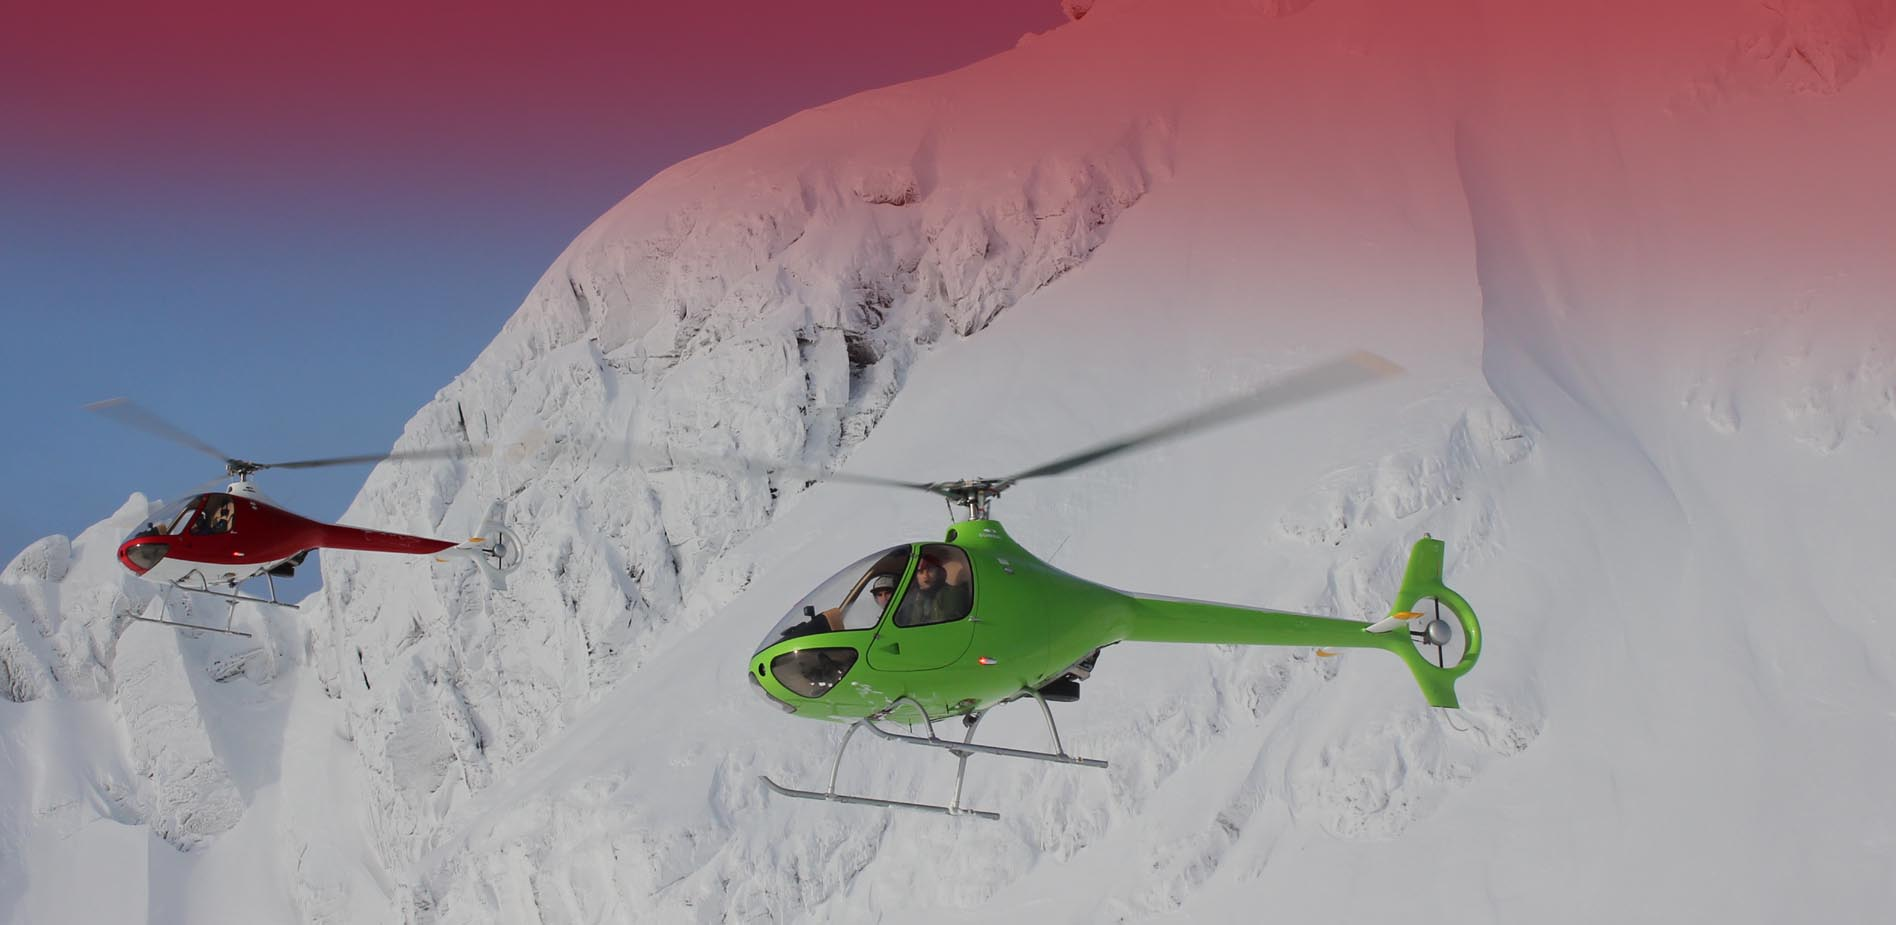 Find out what sets the Cabri G2 Apart